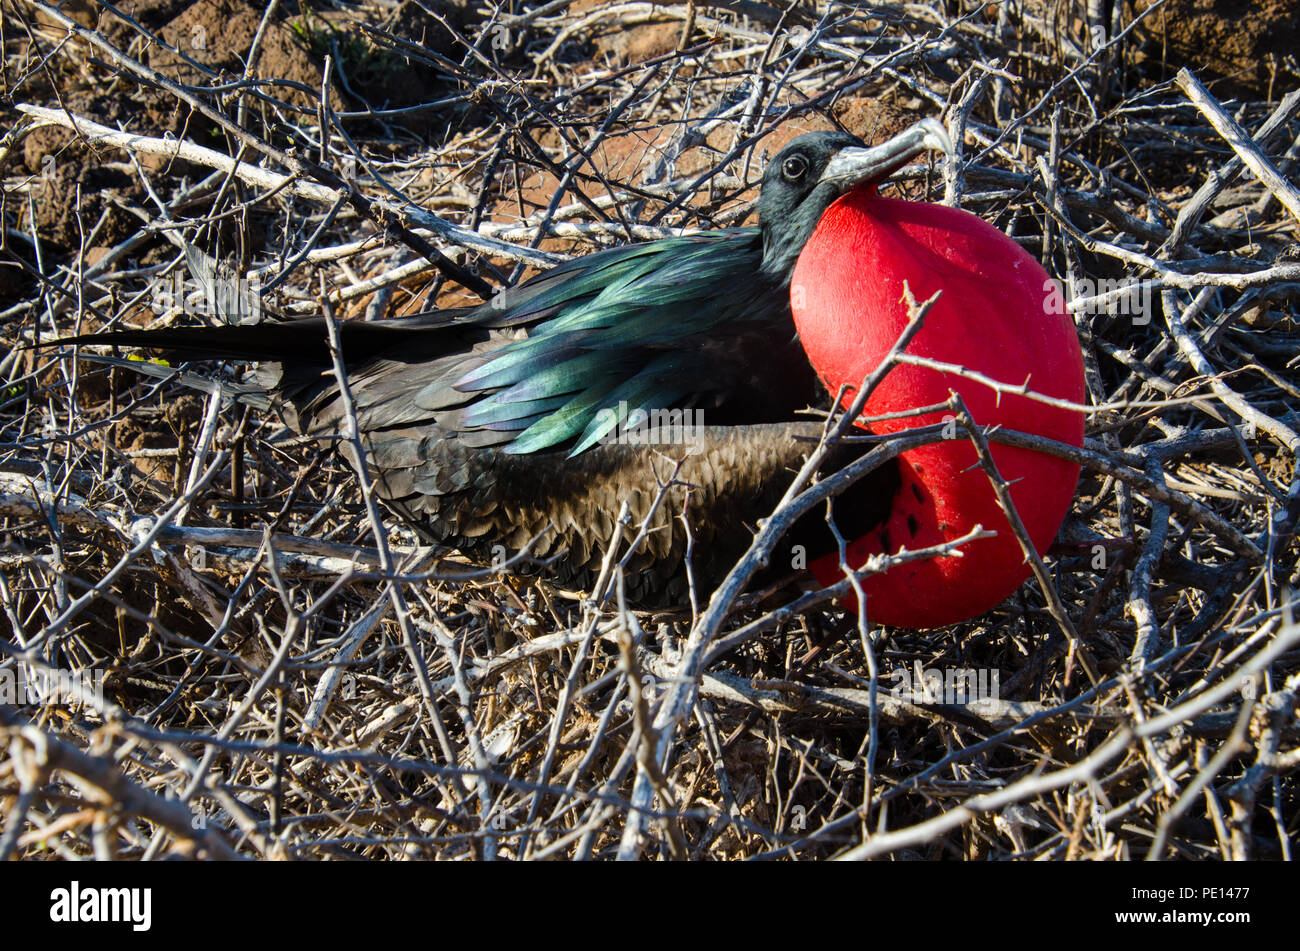 Male Magnificent frigate bird with inflated red throat pouch take its turn sitting on nest made of dry twigs on island in Galapagos. - Stock Image